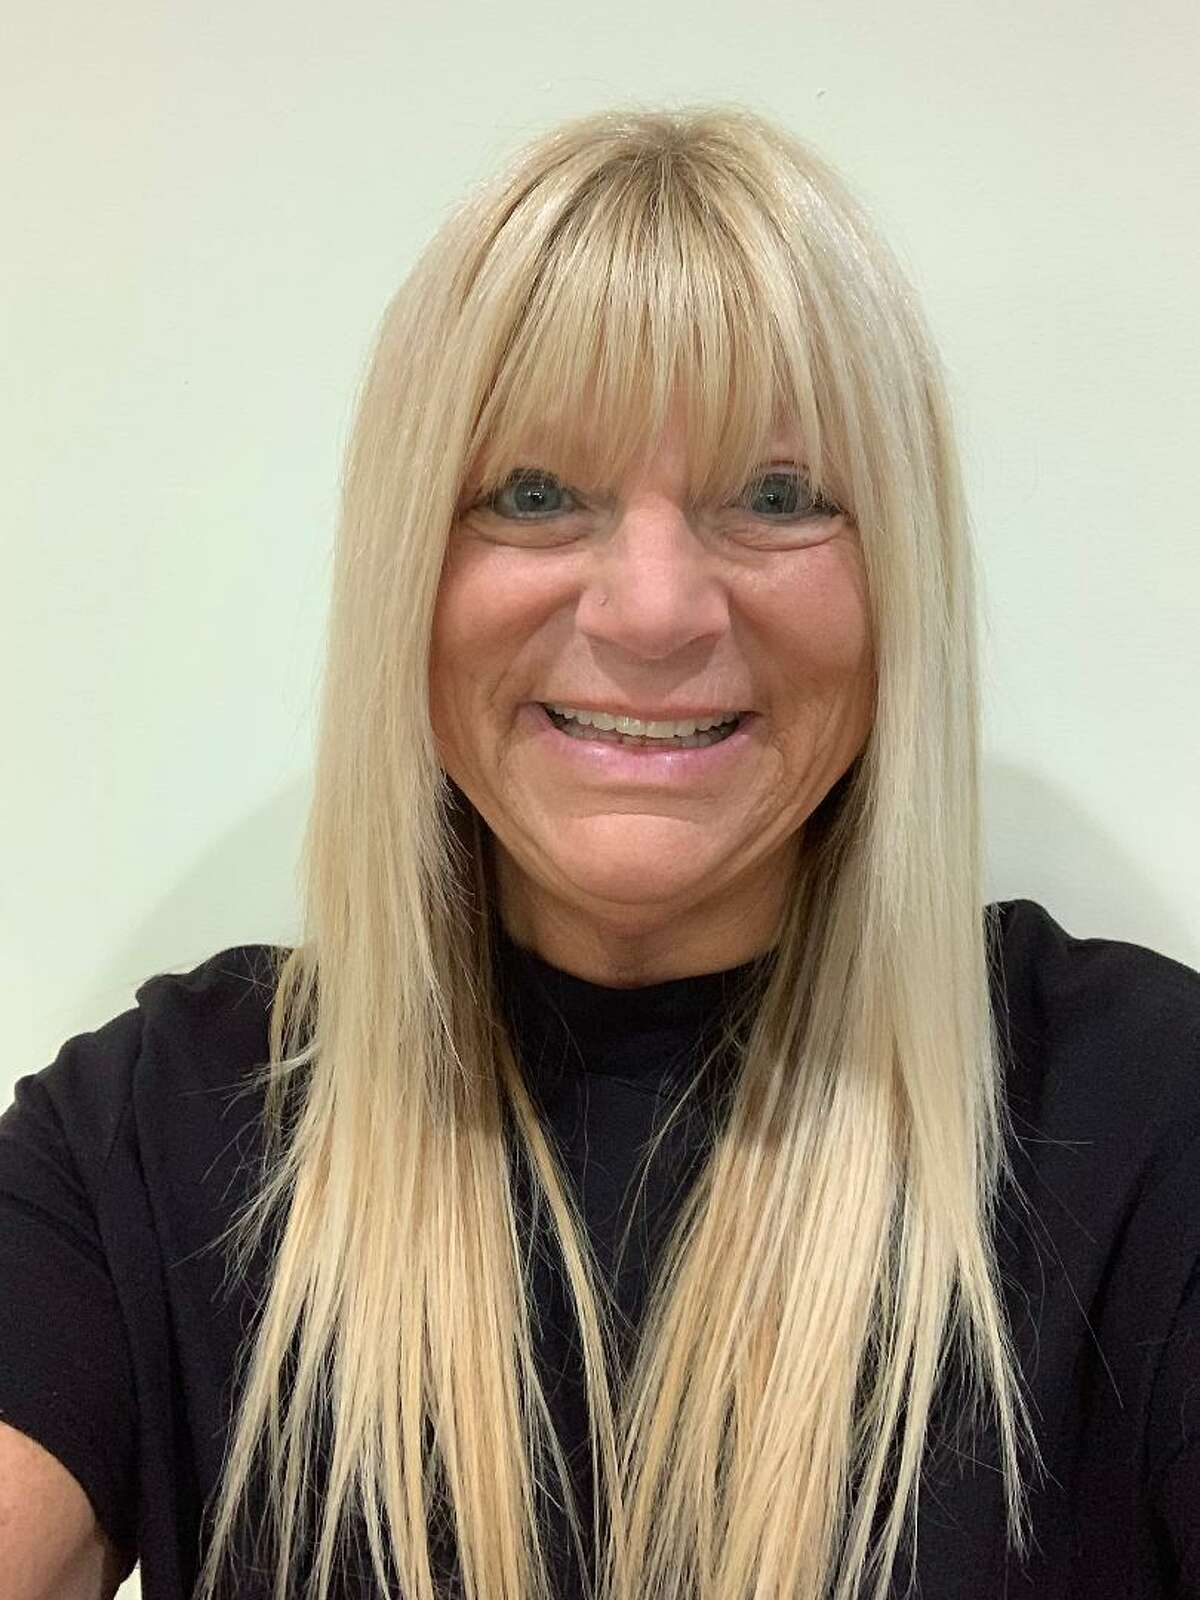 Bobbi Tar, a youth outreach officer for Shelton Public Schools and an adjunct professor in criminal justice at Pace University, is the leading candidate to fill the vacancy on Ansonia's Board of Aldermen created by the resignation of Tarek Raslan.